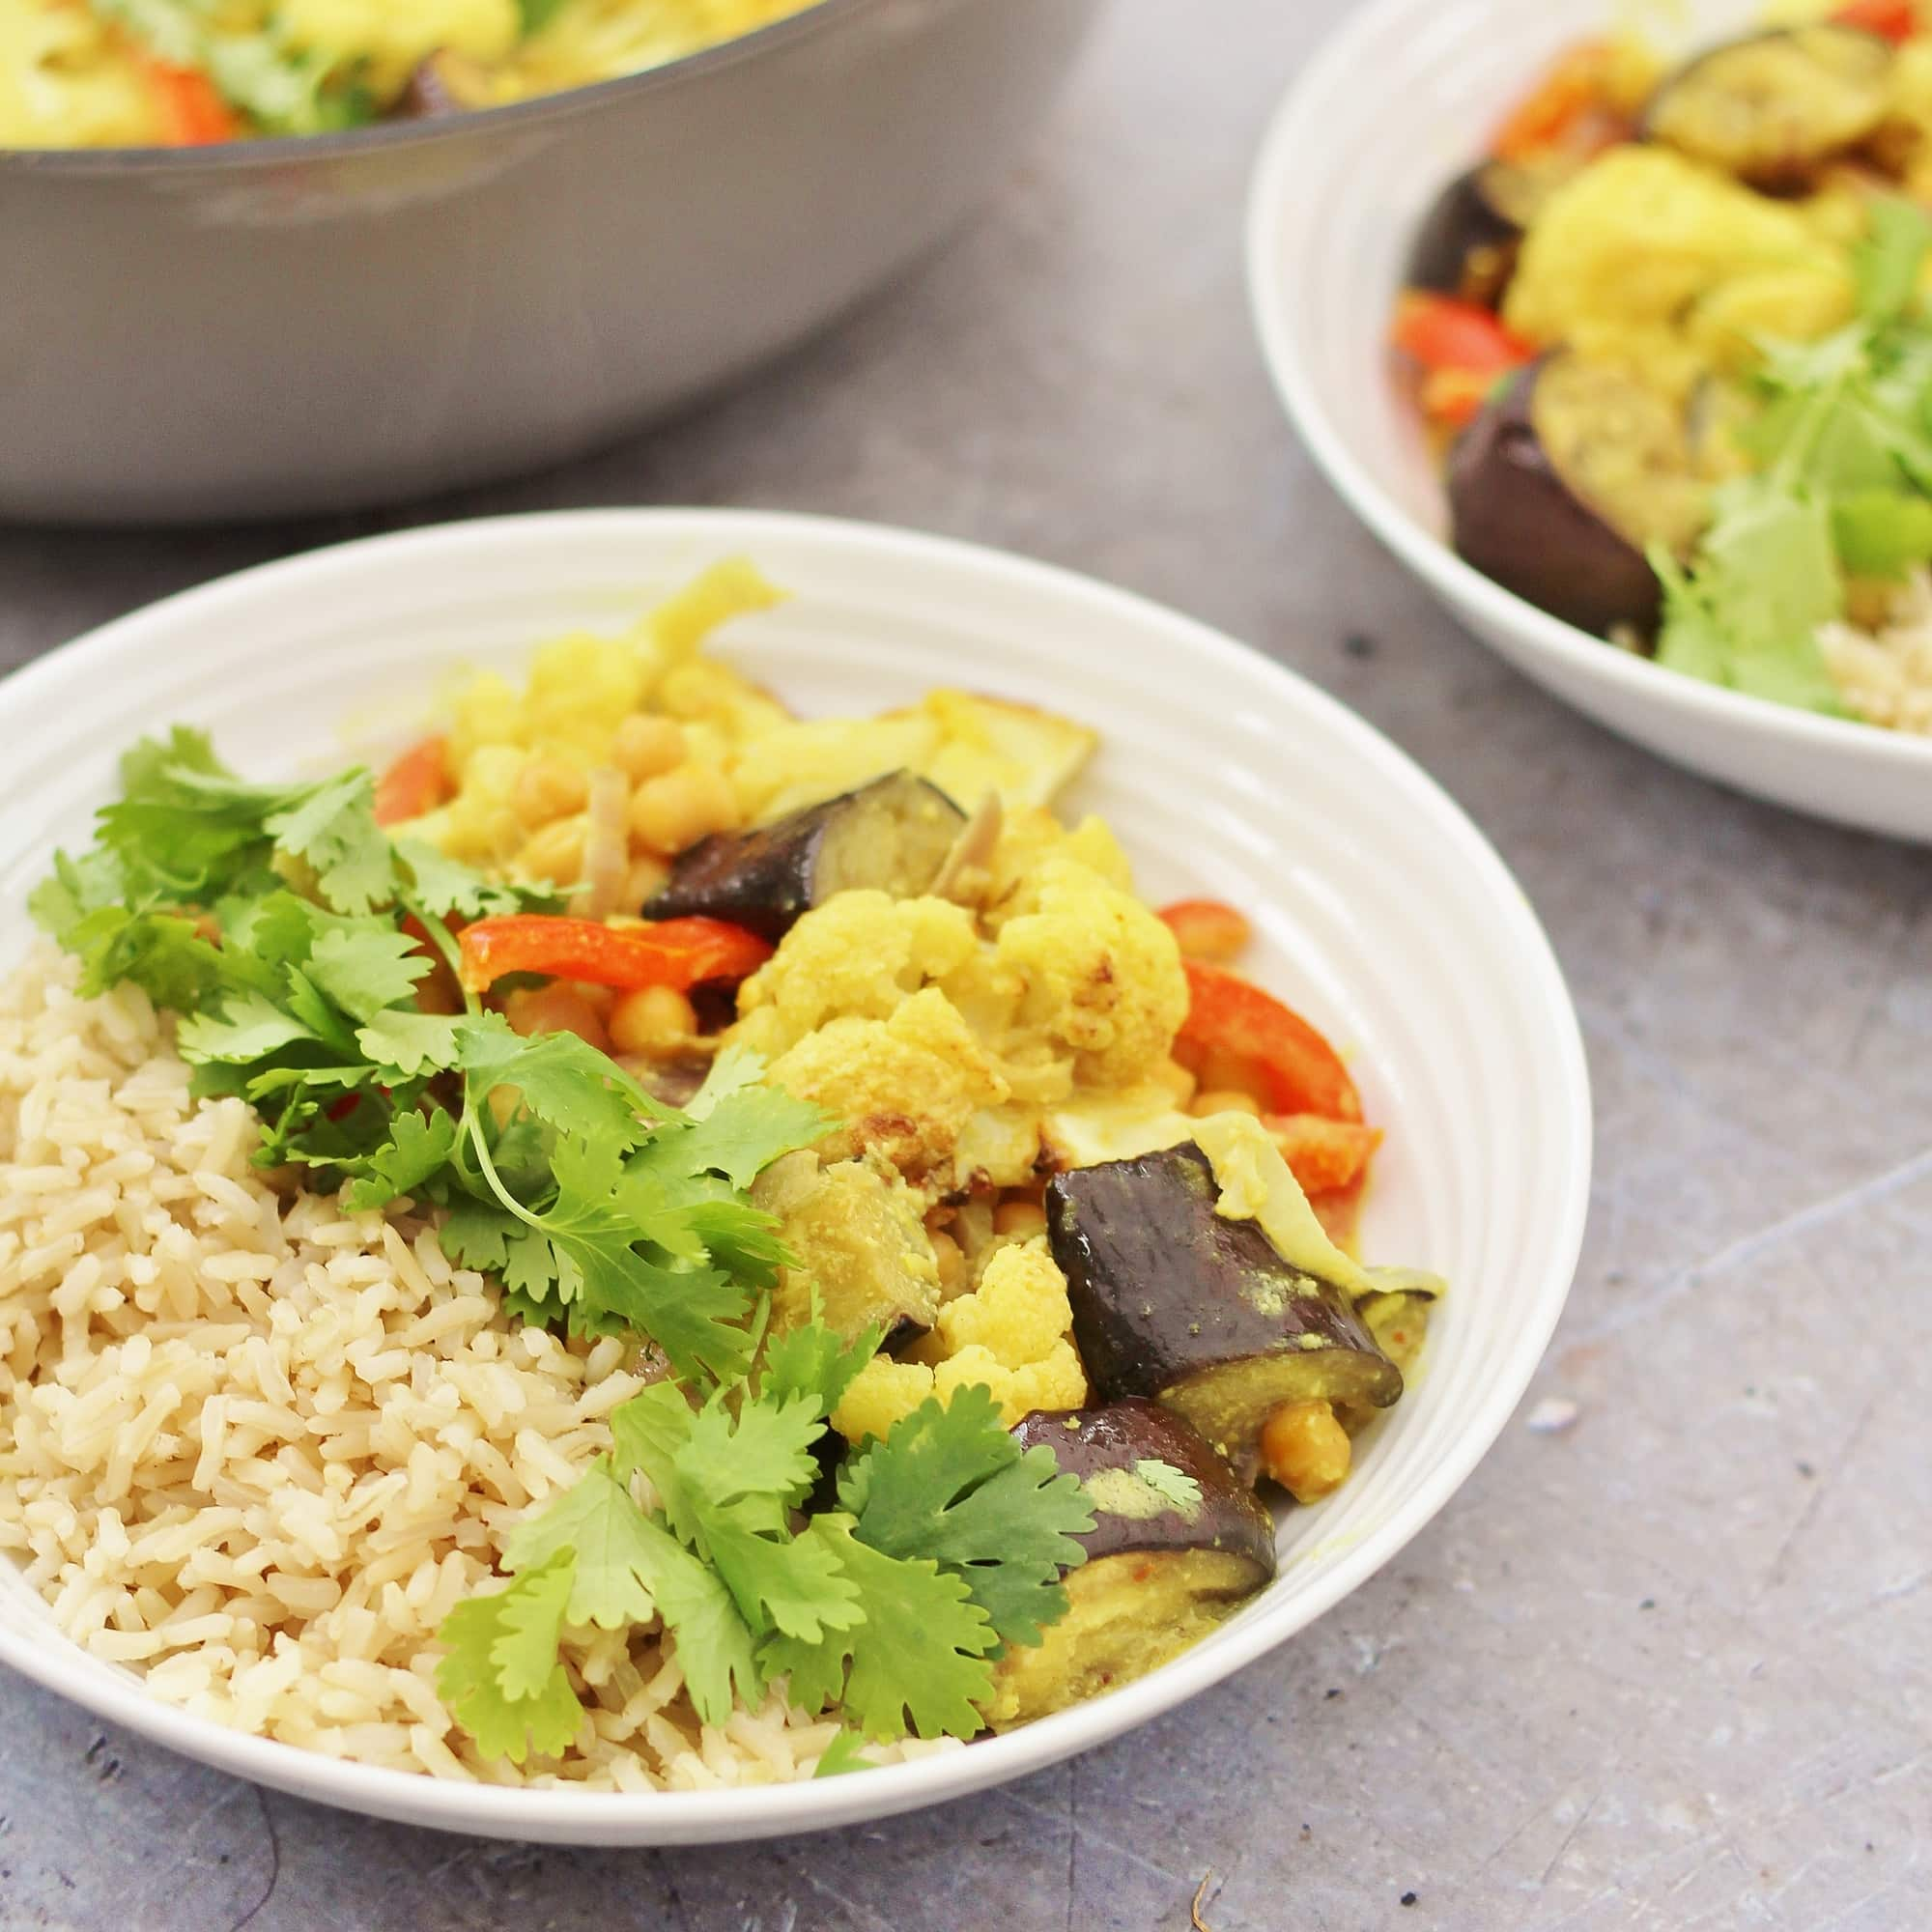 Simple, healthy and utterly delicious this Easy Vegetable Korma can be on your table in just 30 minutes, making it a perfect midweek meal!